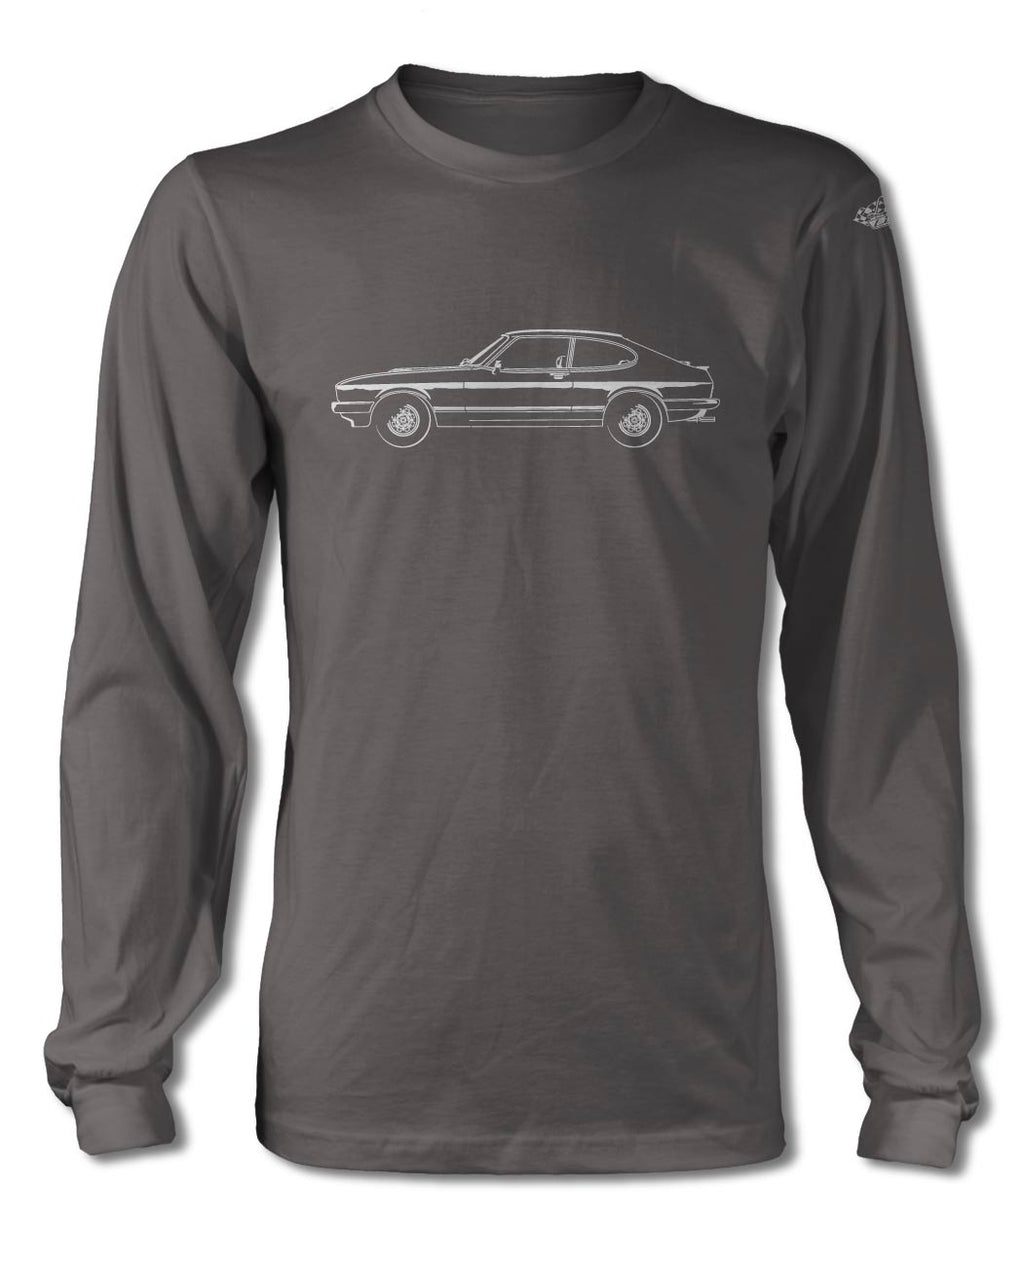 Ford Capri MK III Coupe T-Shirt - Long Sleeves - Side View